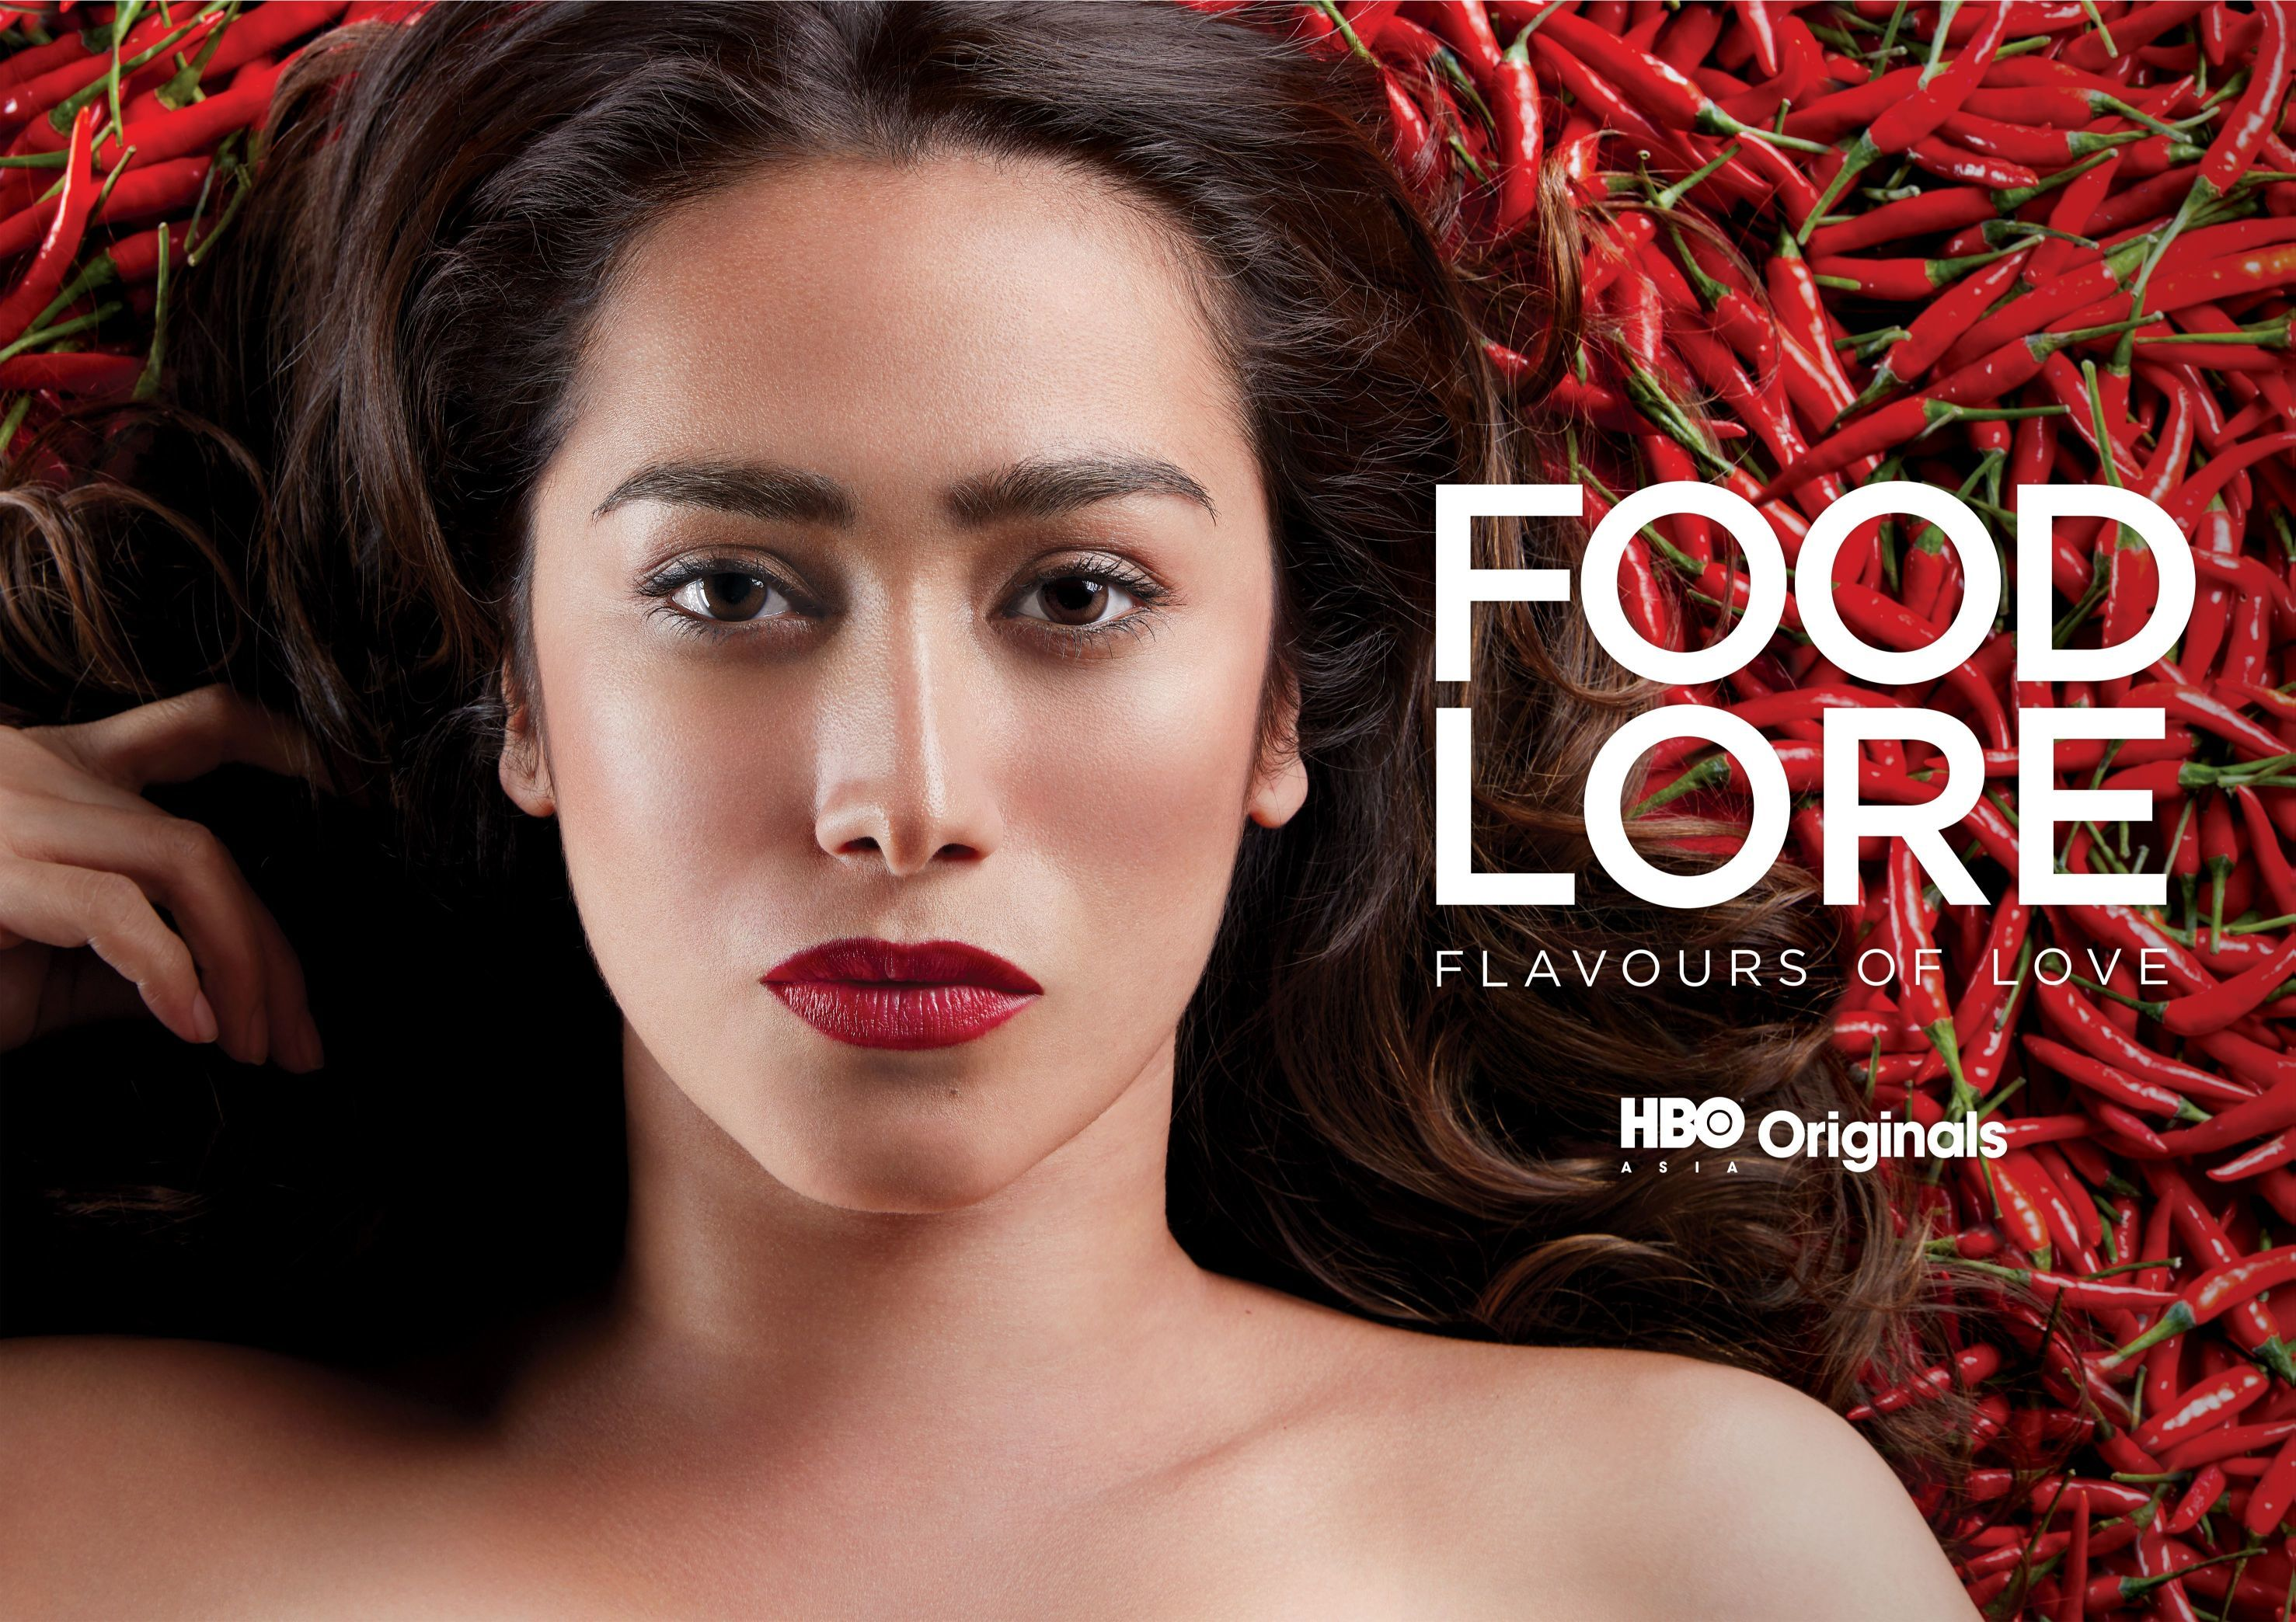 (C)2019 HBO Pacific Partners, v.o.f. HBO and HBO Asia Originals are service marks of Home Box Office, Inc.  FOOD LORE is a service mark of HBO Pacific Partners, v.o.f. Used with permission.(C)2019 HBO Asia. All rights reserved.